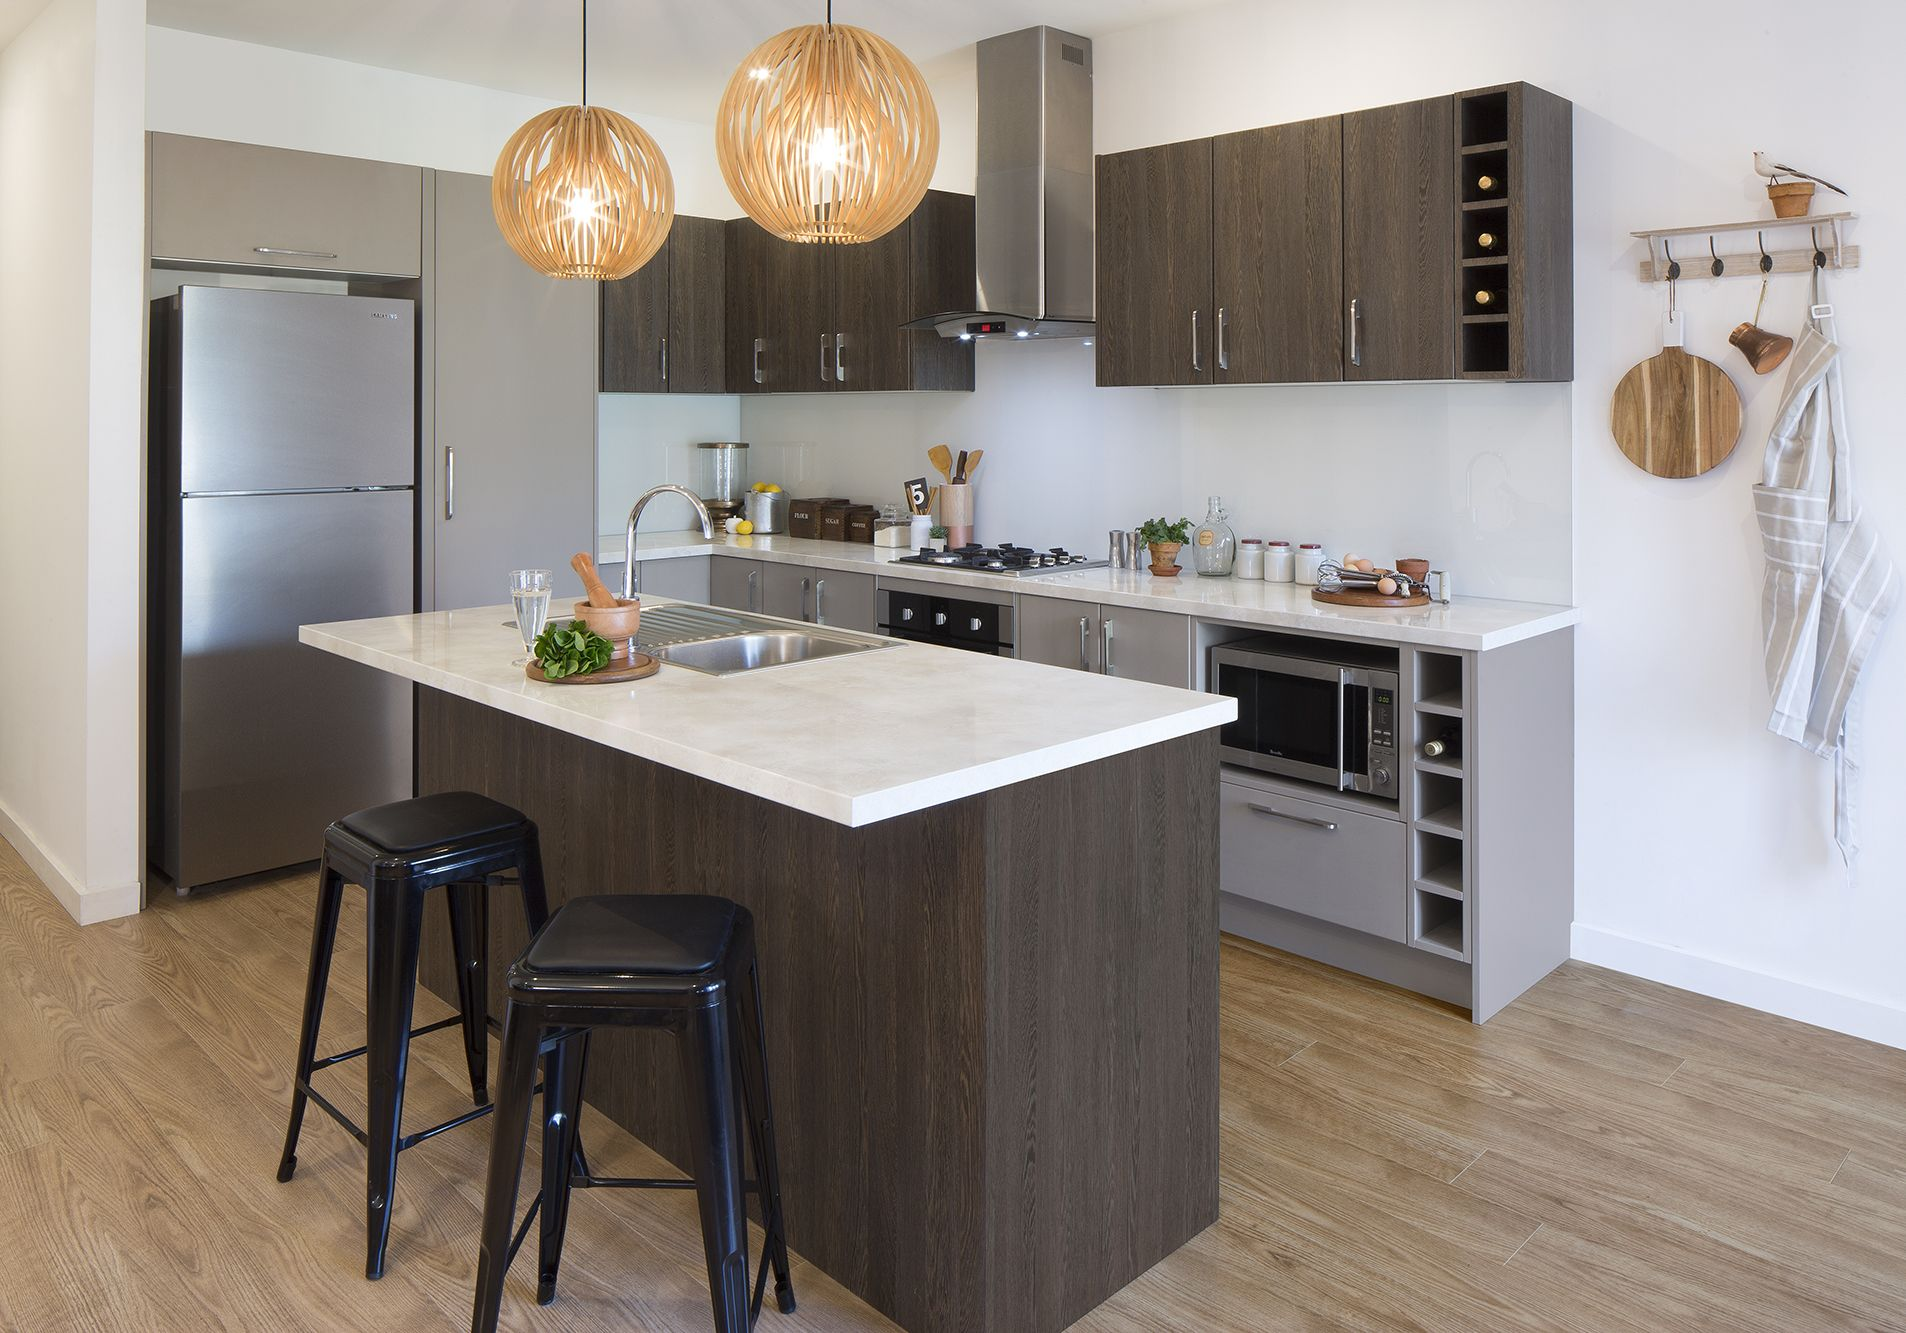 Flat Pack Kitchens Inspiration Gallery  Kitchen Design  Kitchen Cool Gallery Kitchen Design Inspiration Design